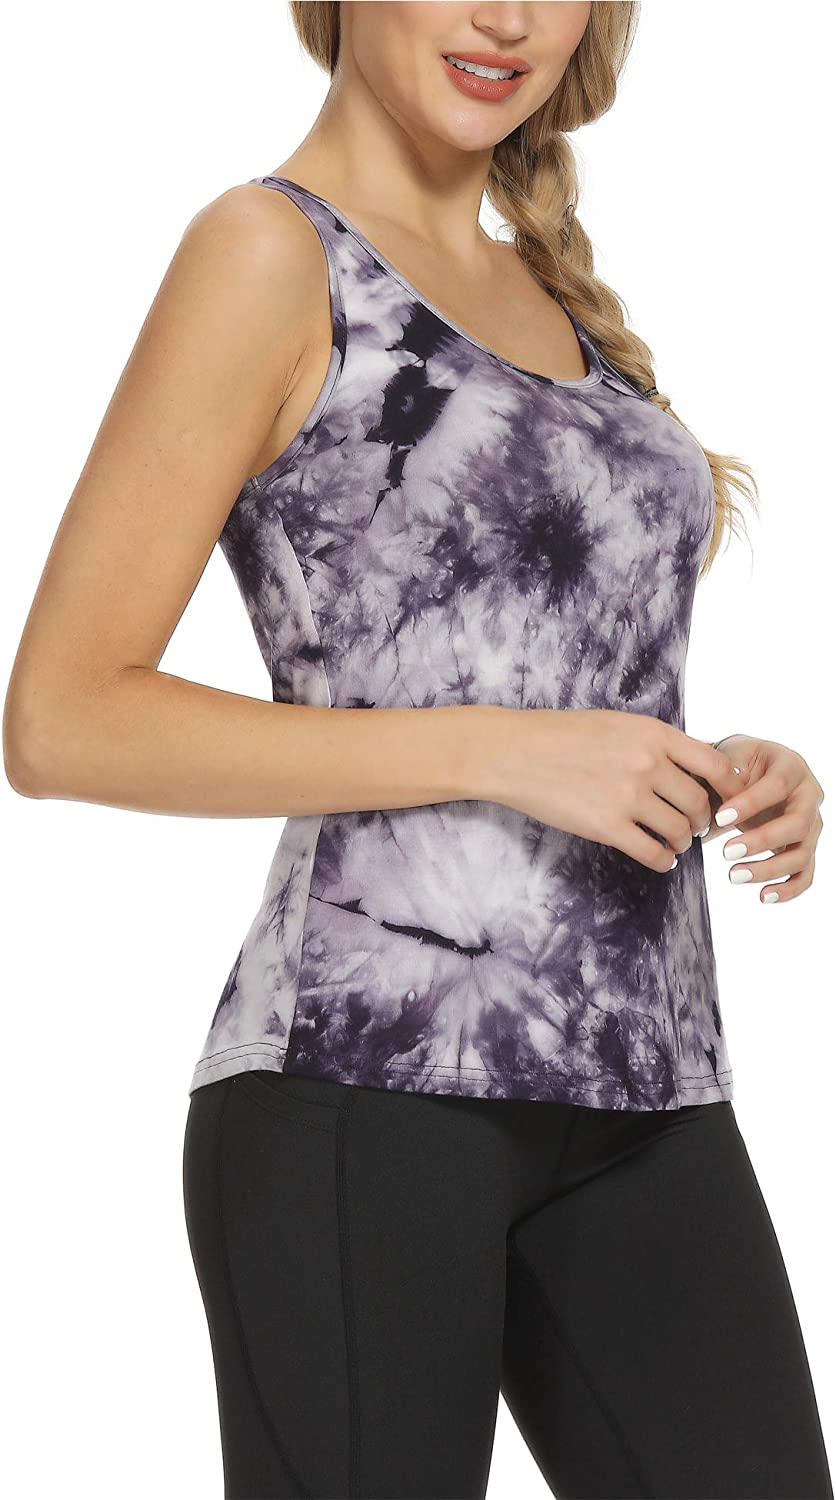 Clicilen Workout Tops for Women Yoga Shirts Loose fit Active wear Gym Shirts Exercise Tops